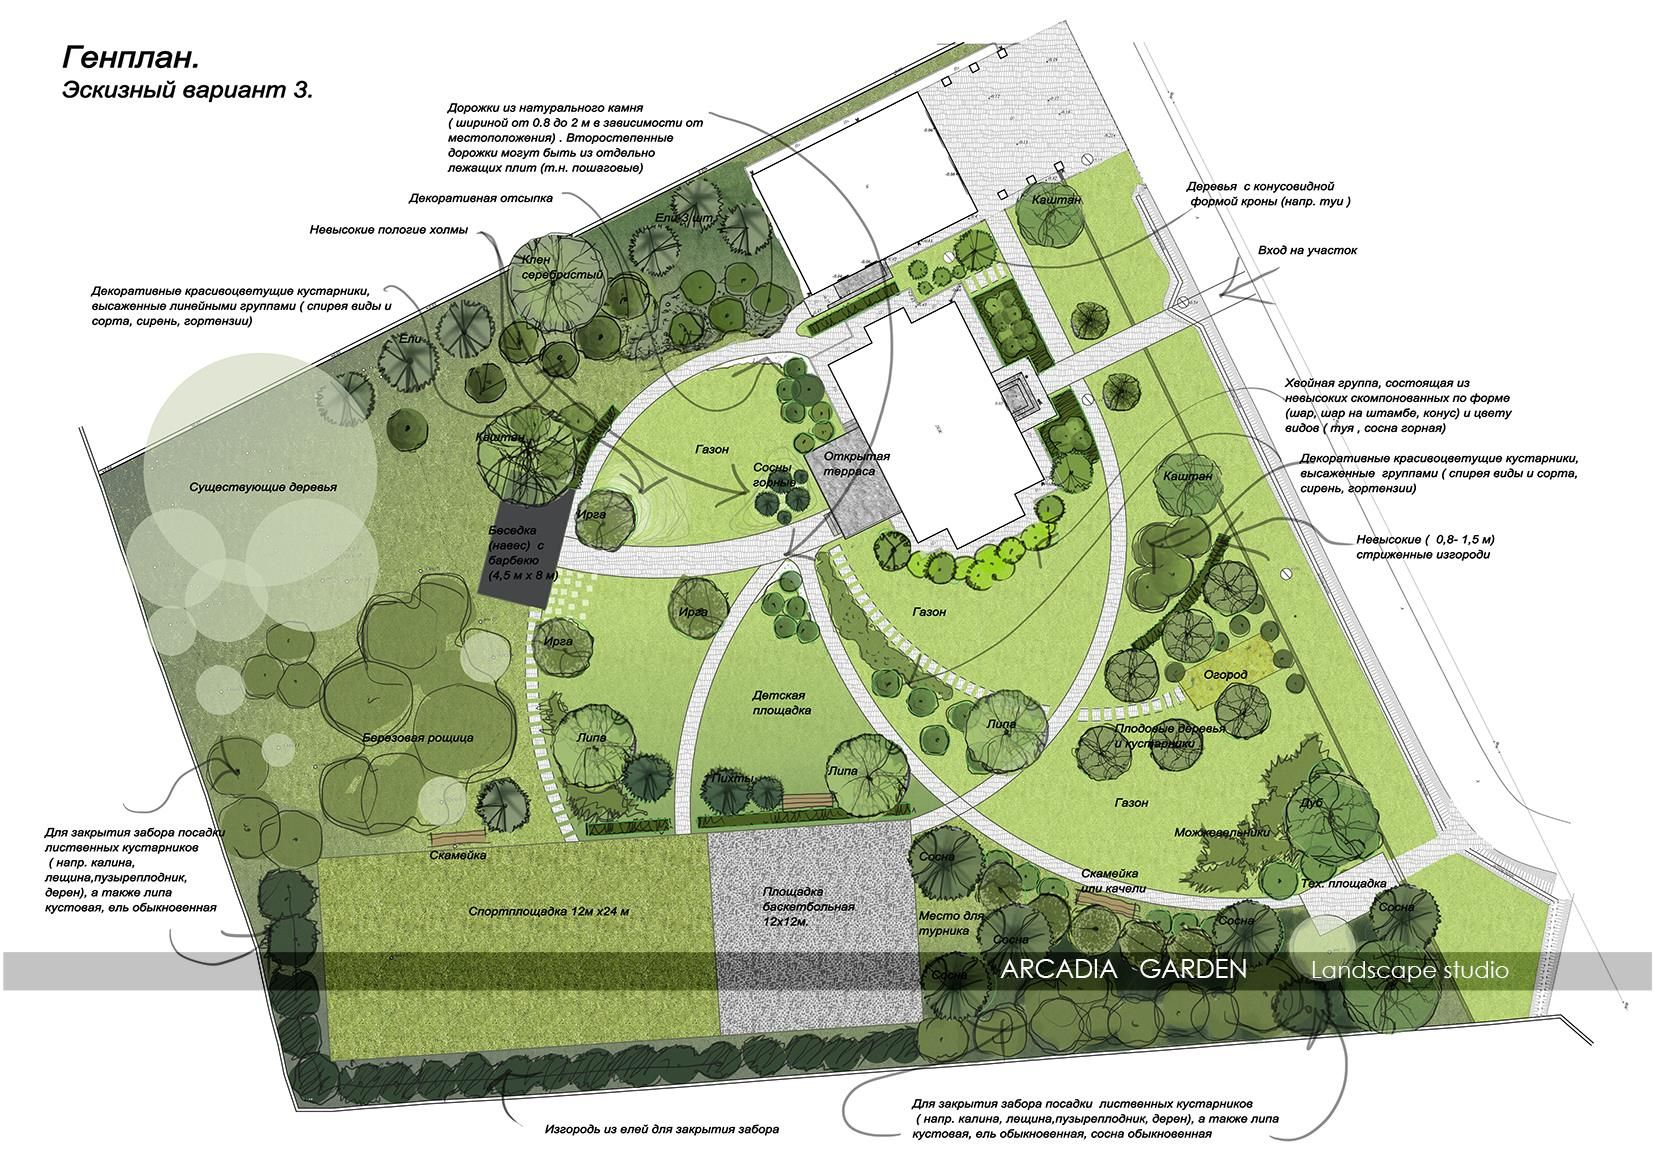 Architecture Master Plan Landscape Design Site Rendering Private Garden Plans Urban Planning Hand Drawings Nature